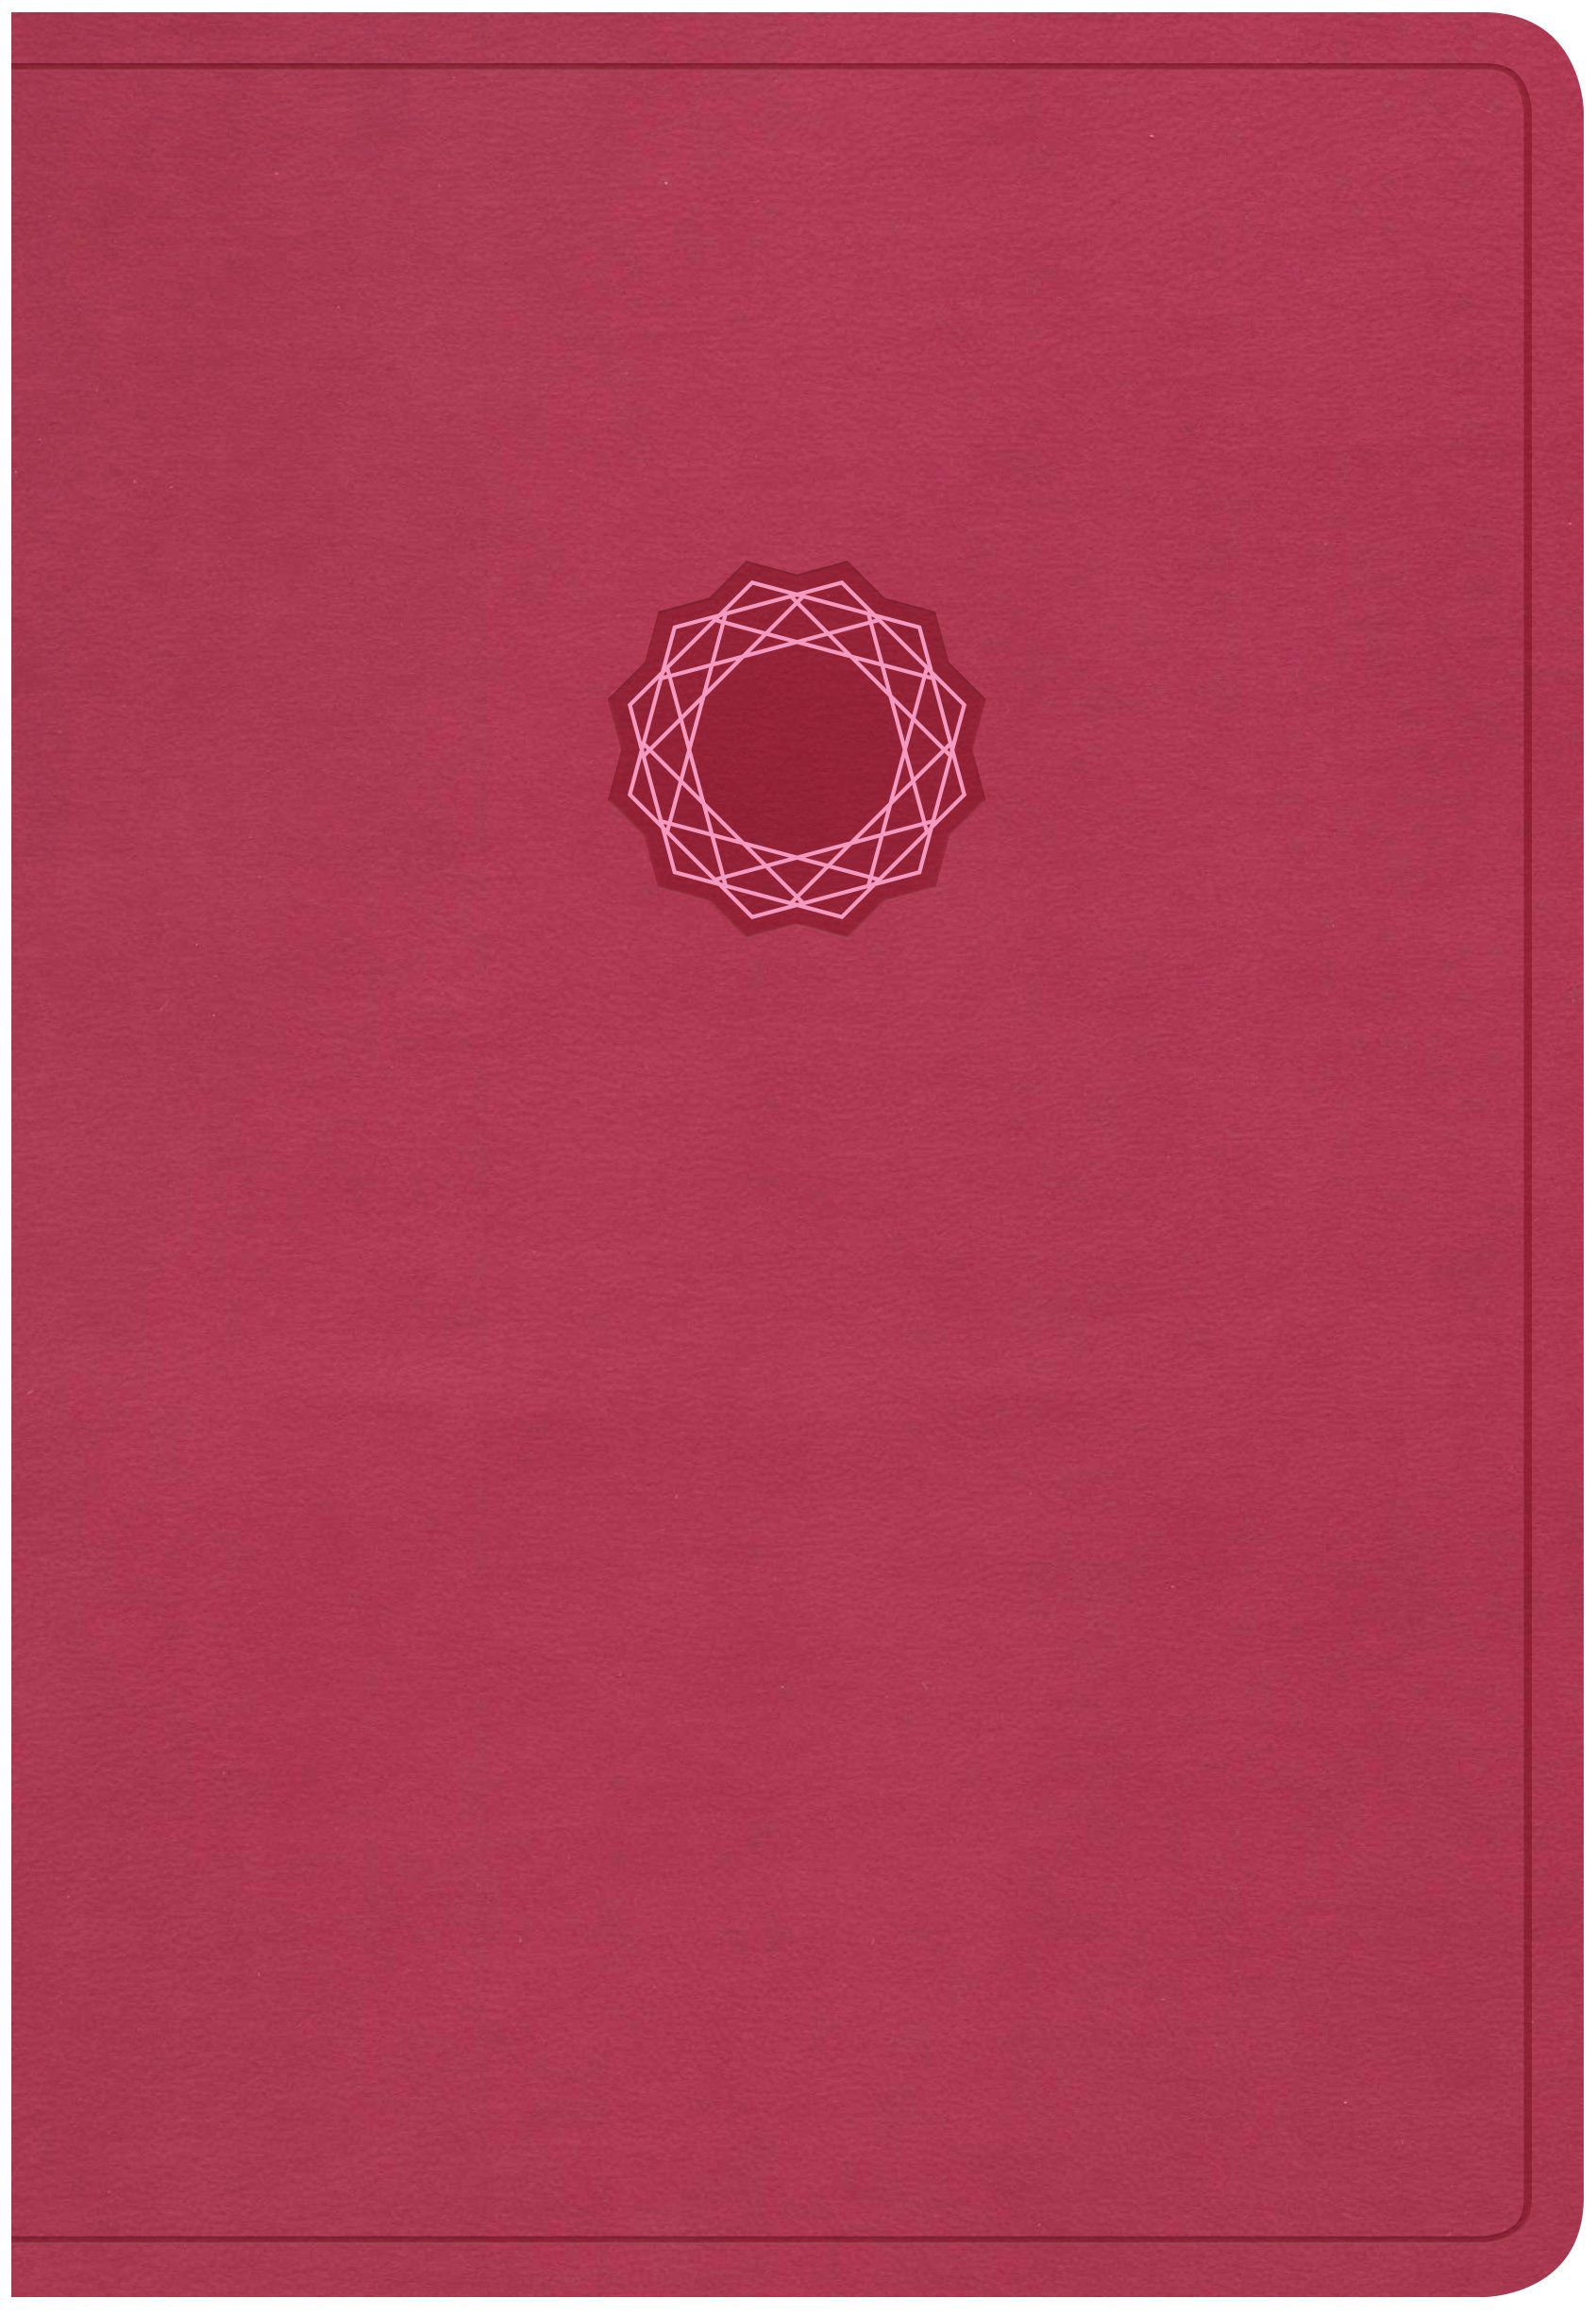 NKJV Deluxe Gift Bible, Pink/Light Pink LeatherTouch